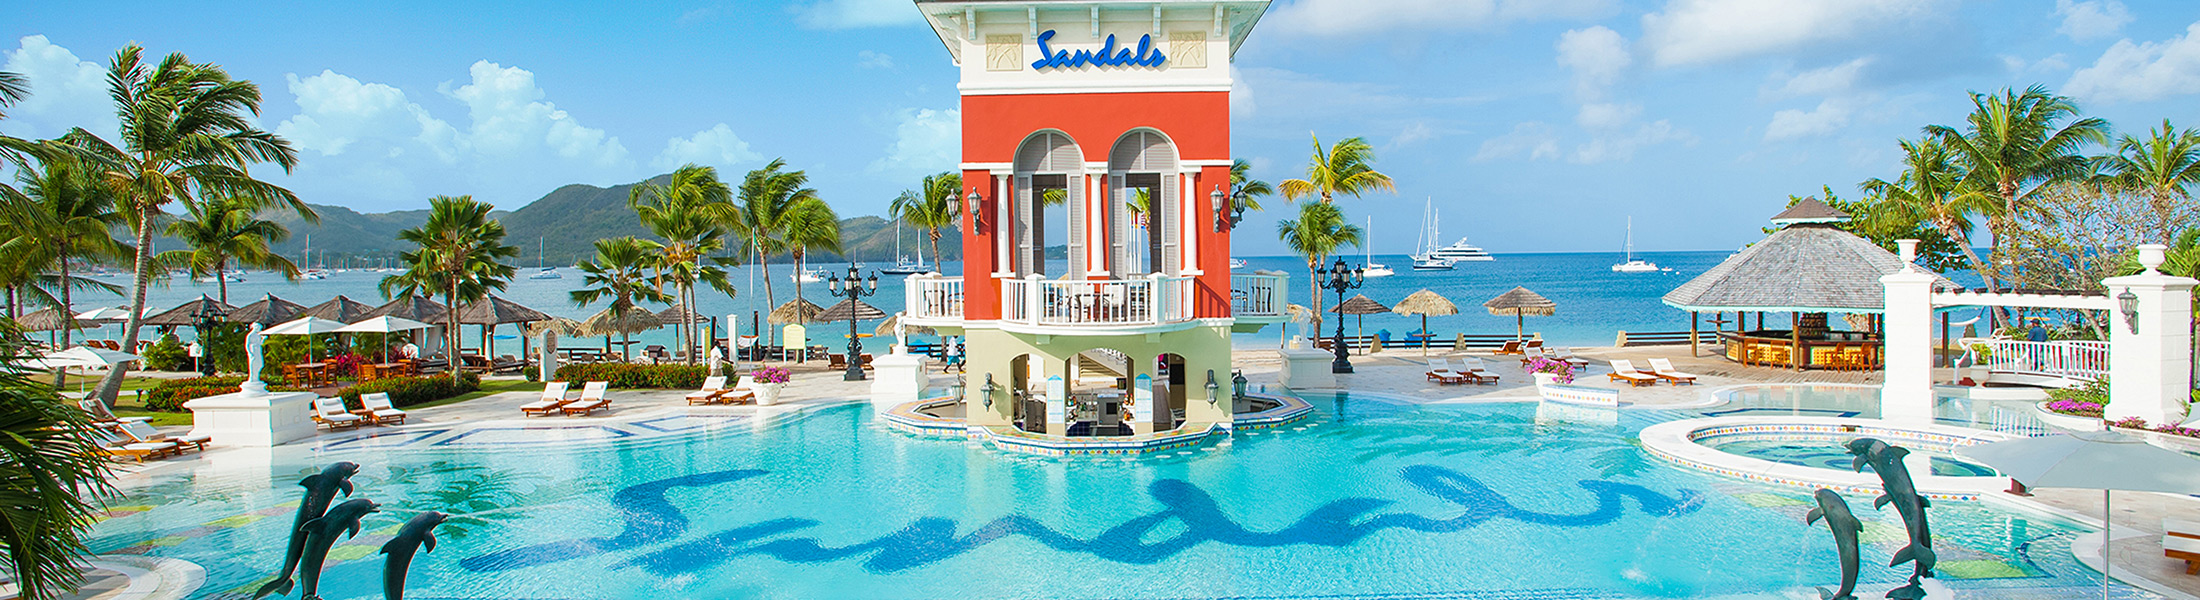 Swim-up bar at Sandals Grande St Lucian